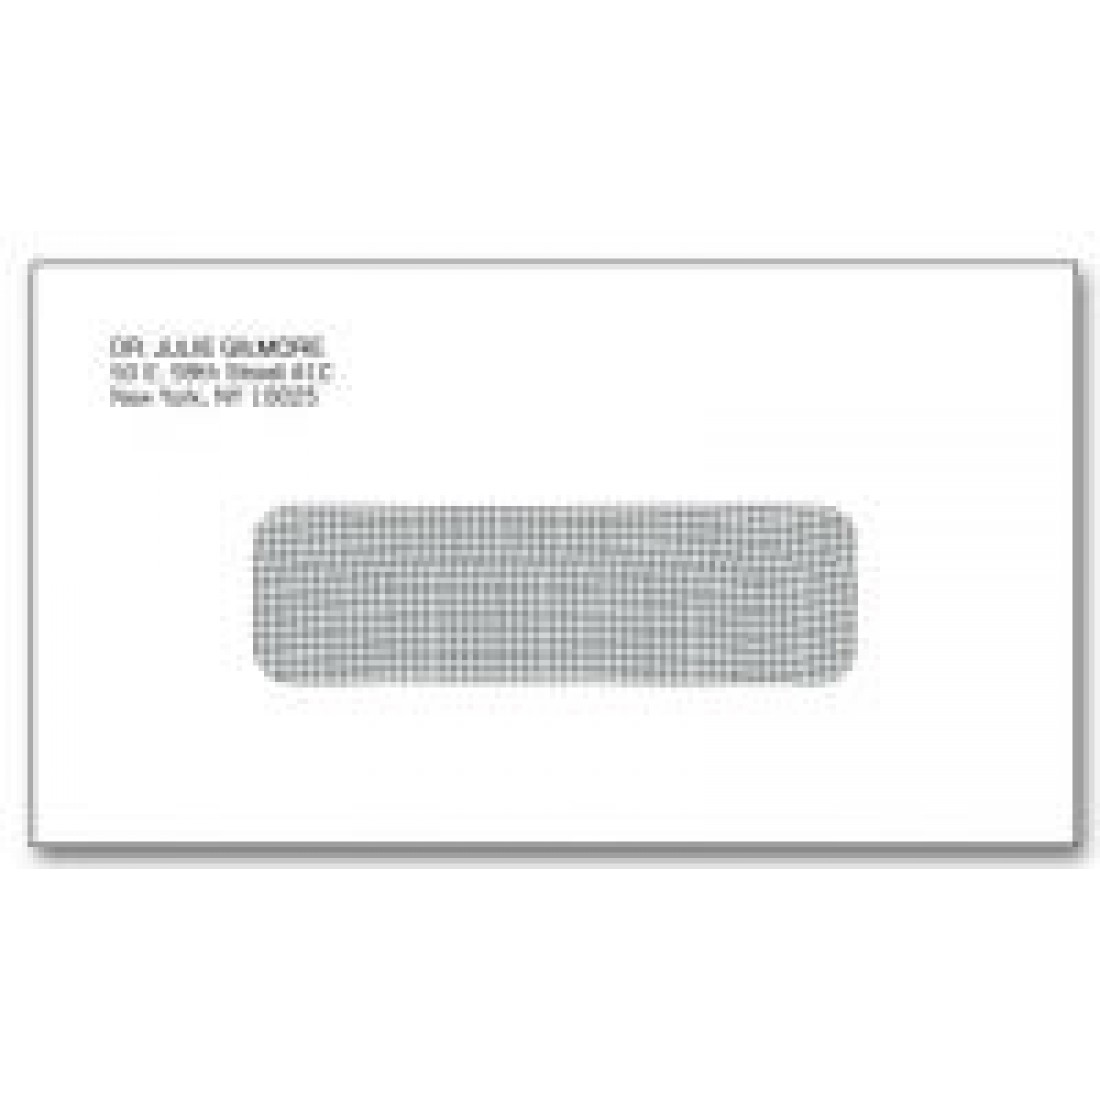 6 single window envelopes free shipping for 2 window envelope